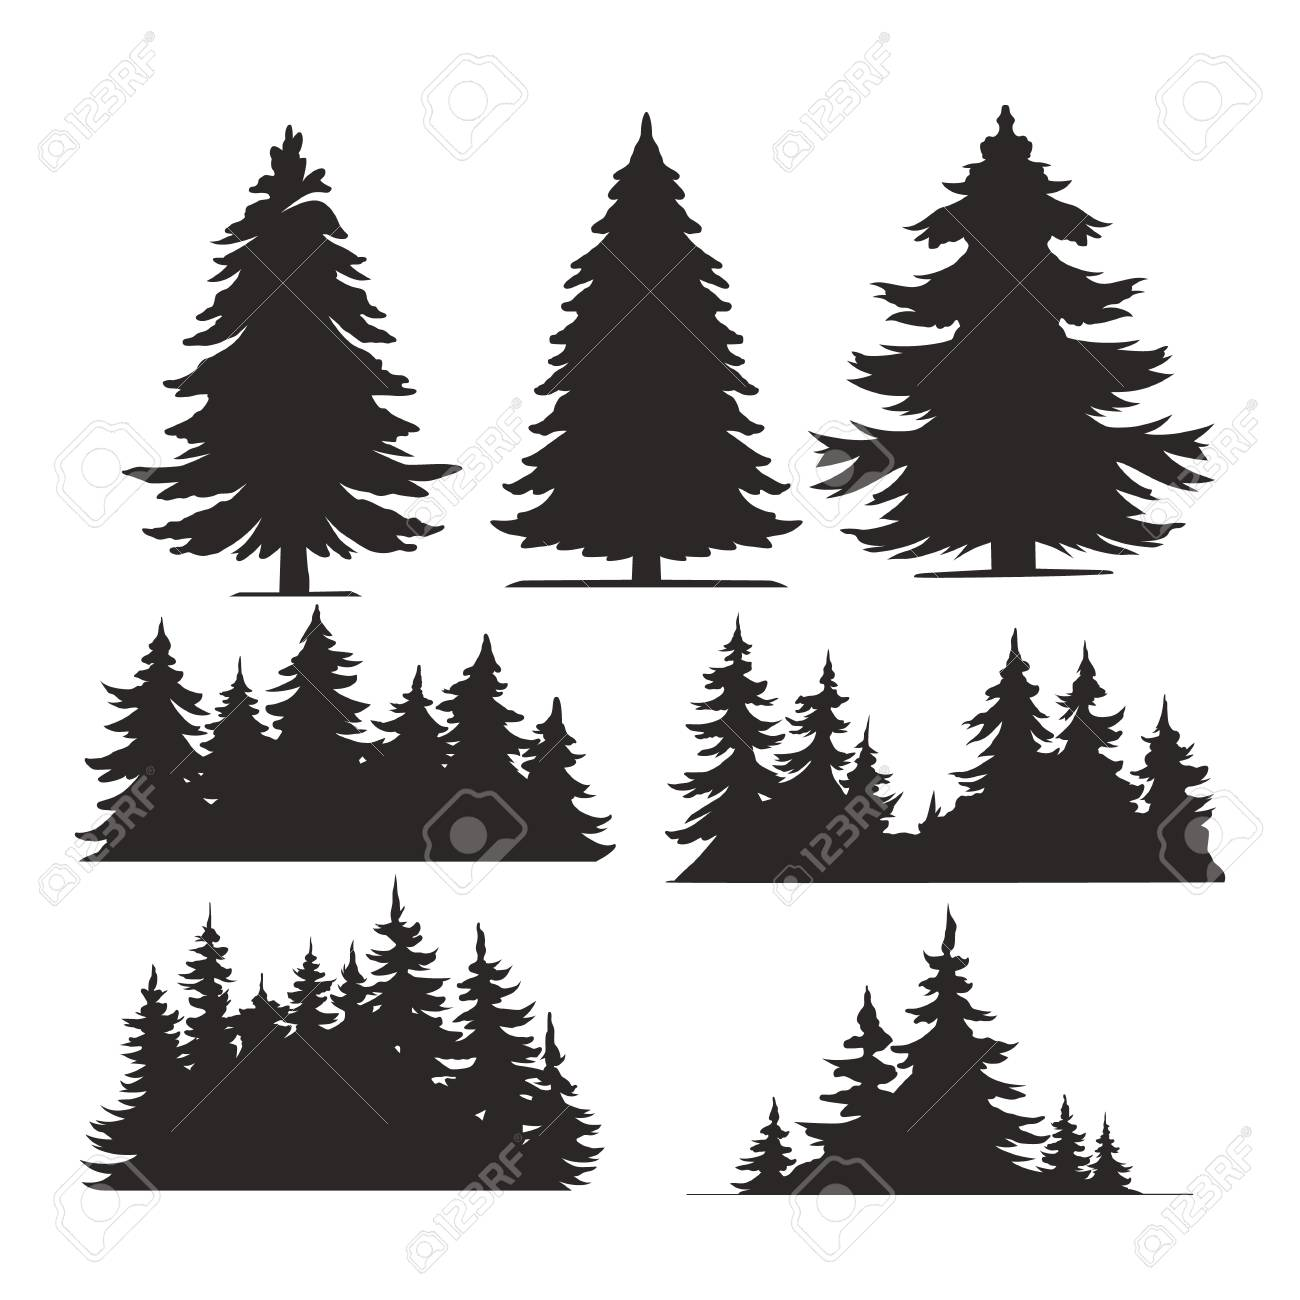 Vintage trees and forest silhouettes set in monochrome style isolated vector illustration - 122418633